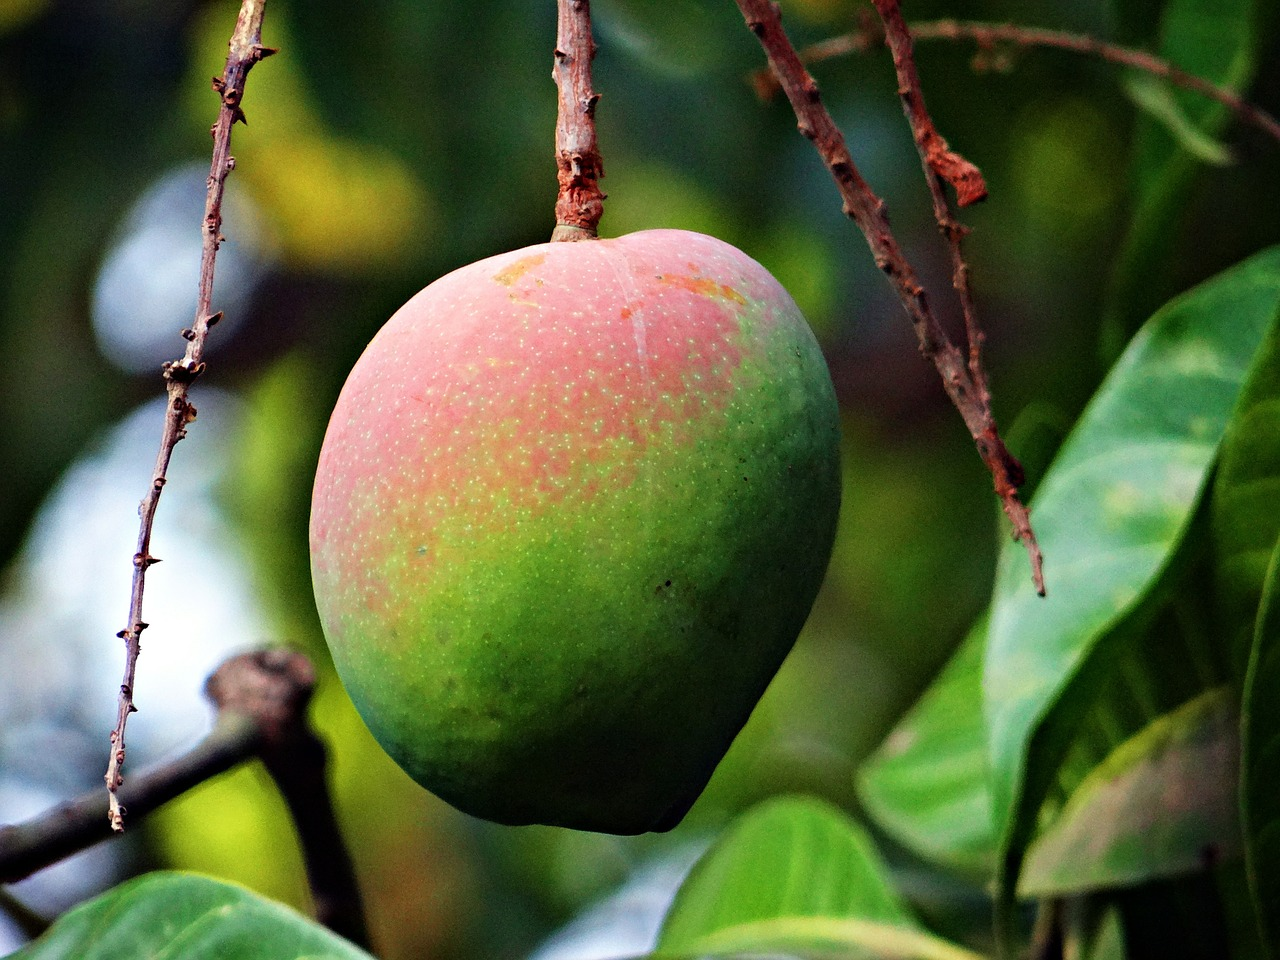 Mango on the tree